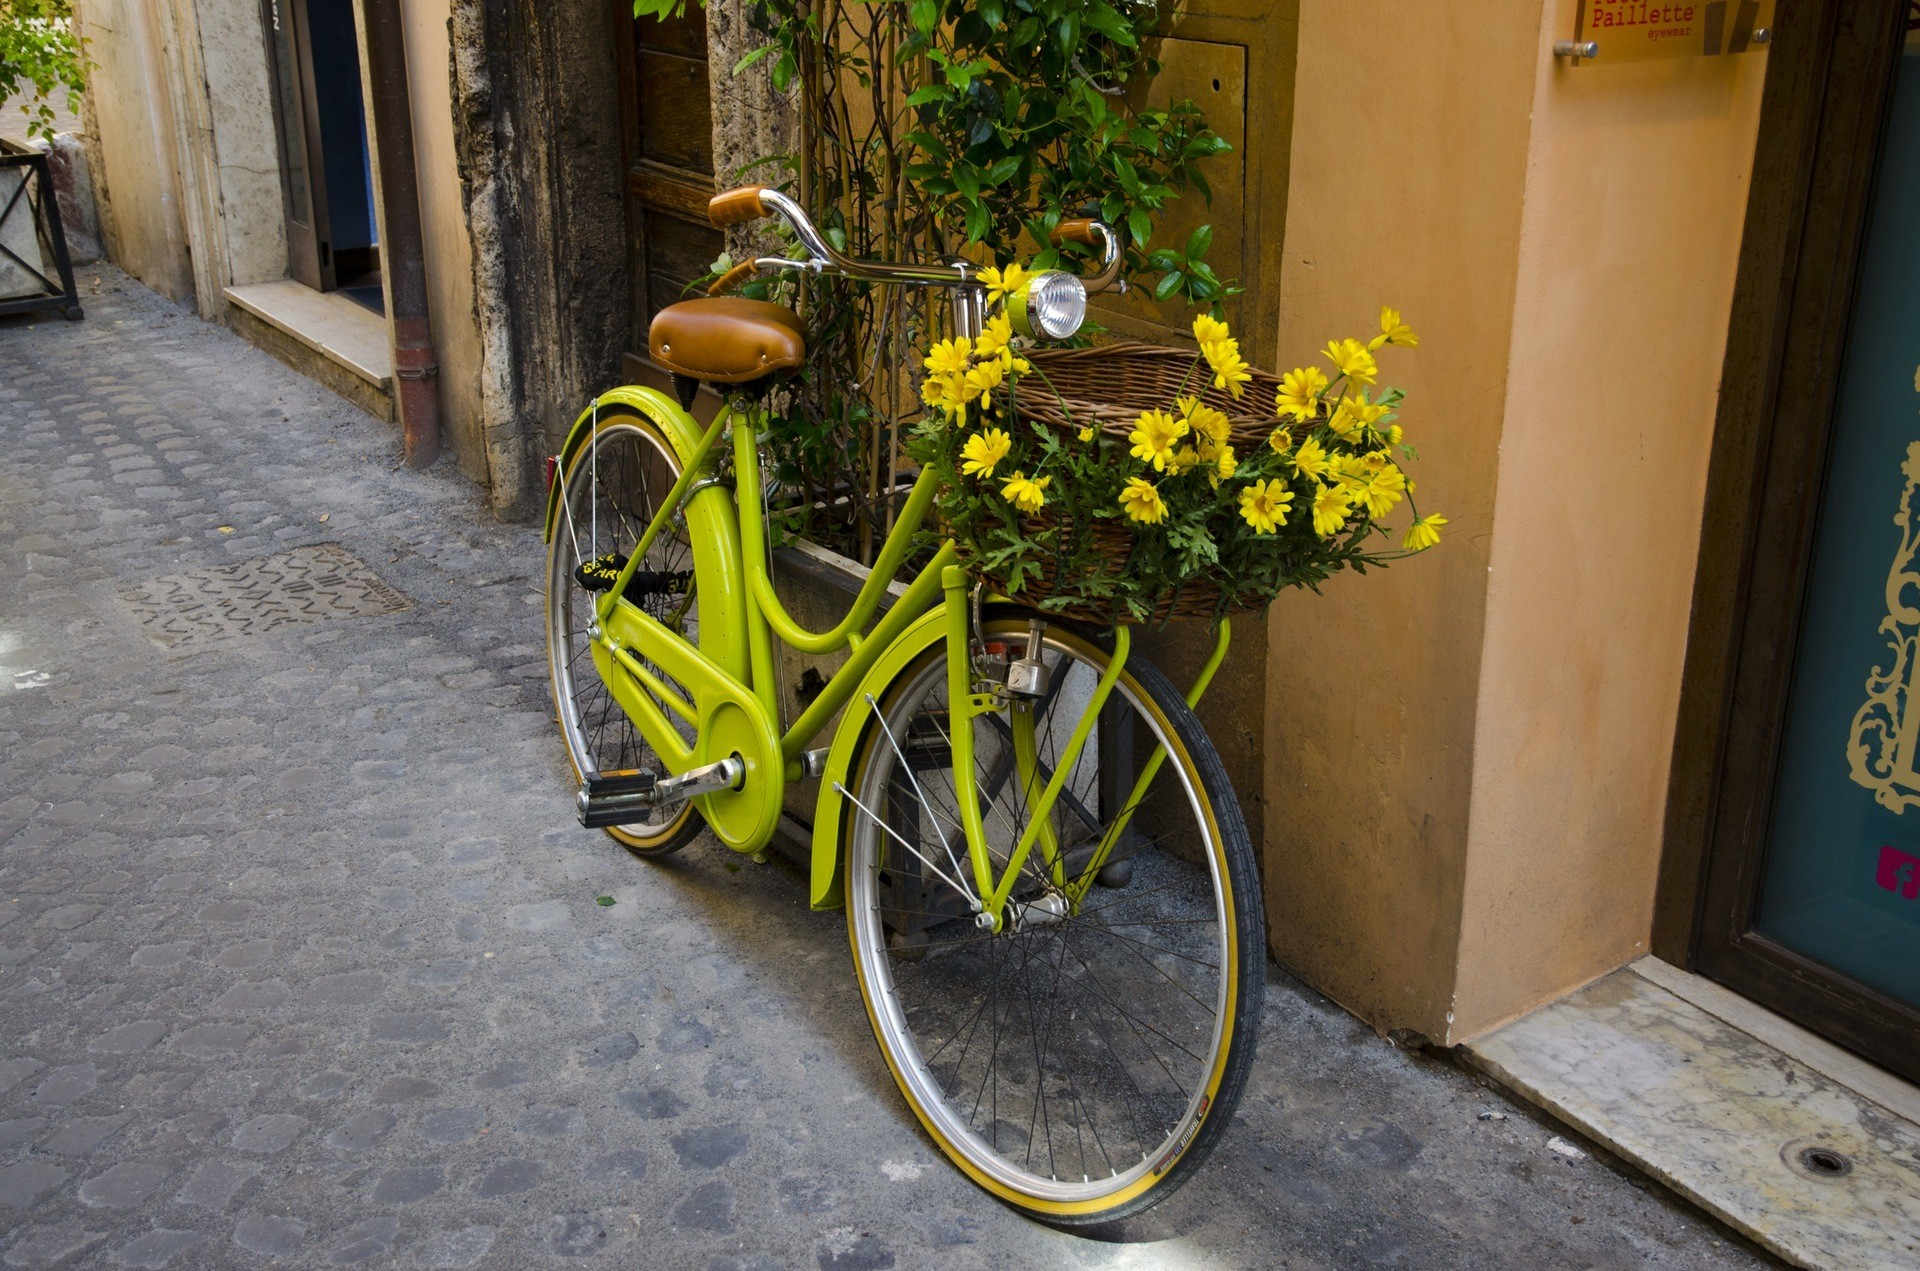 A yellow bicycle. Bicycles could be a primary form of transport in our future society.